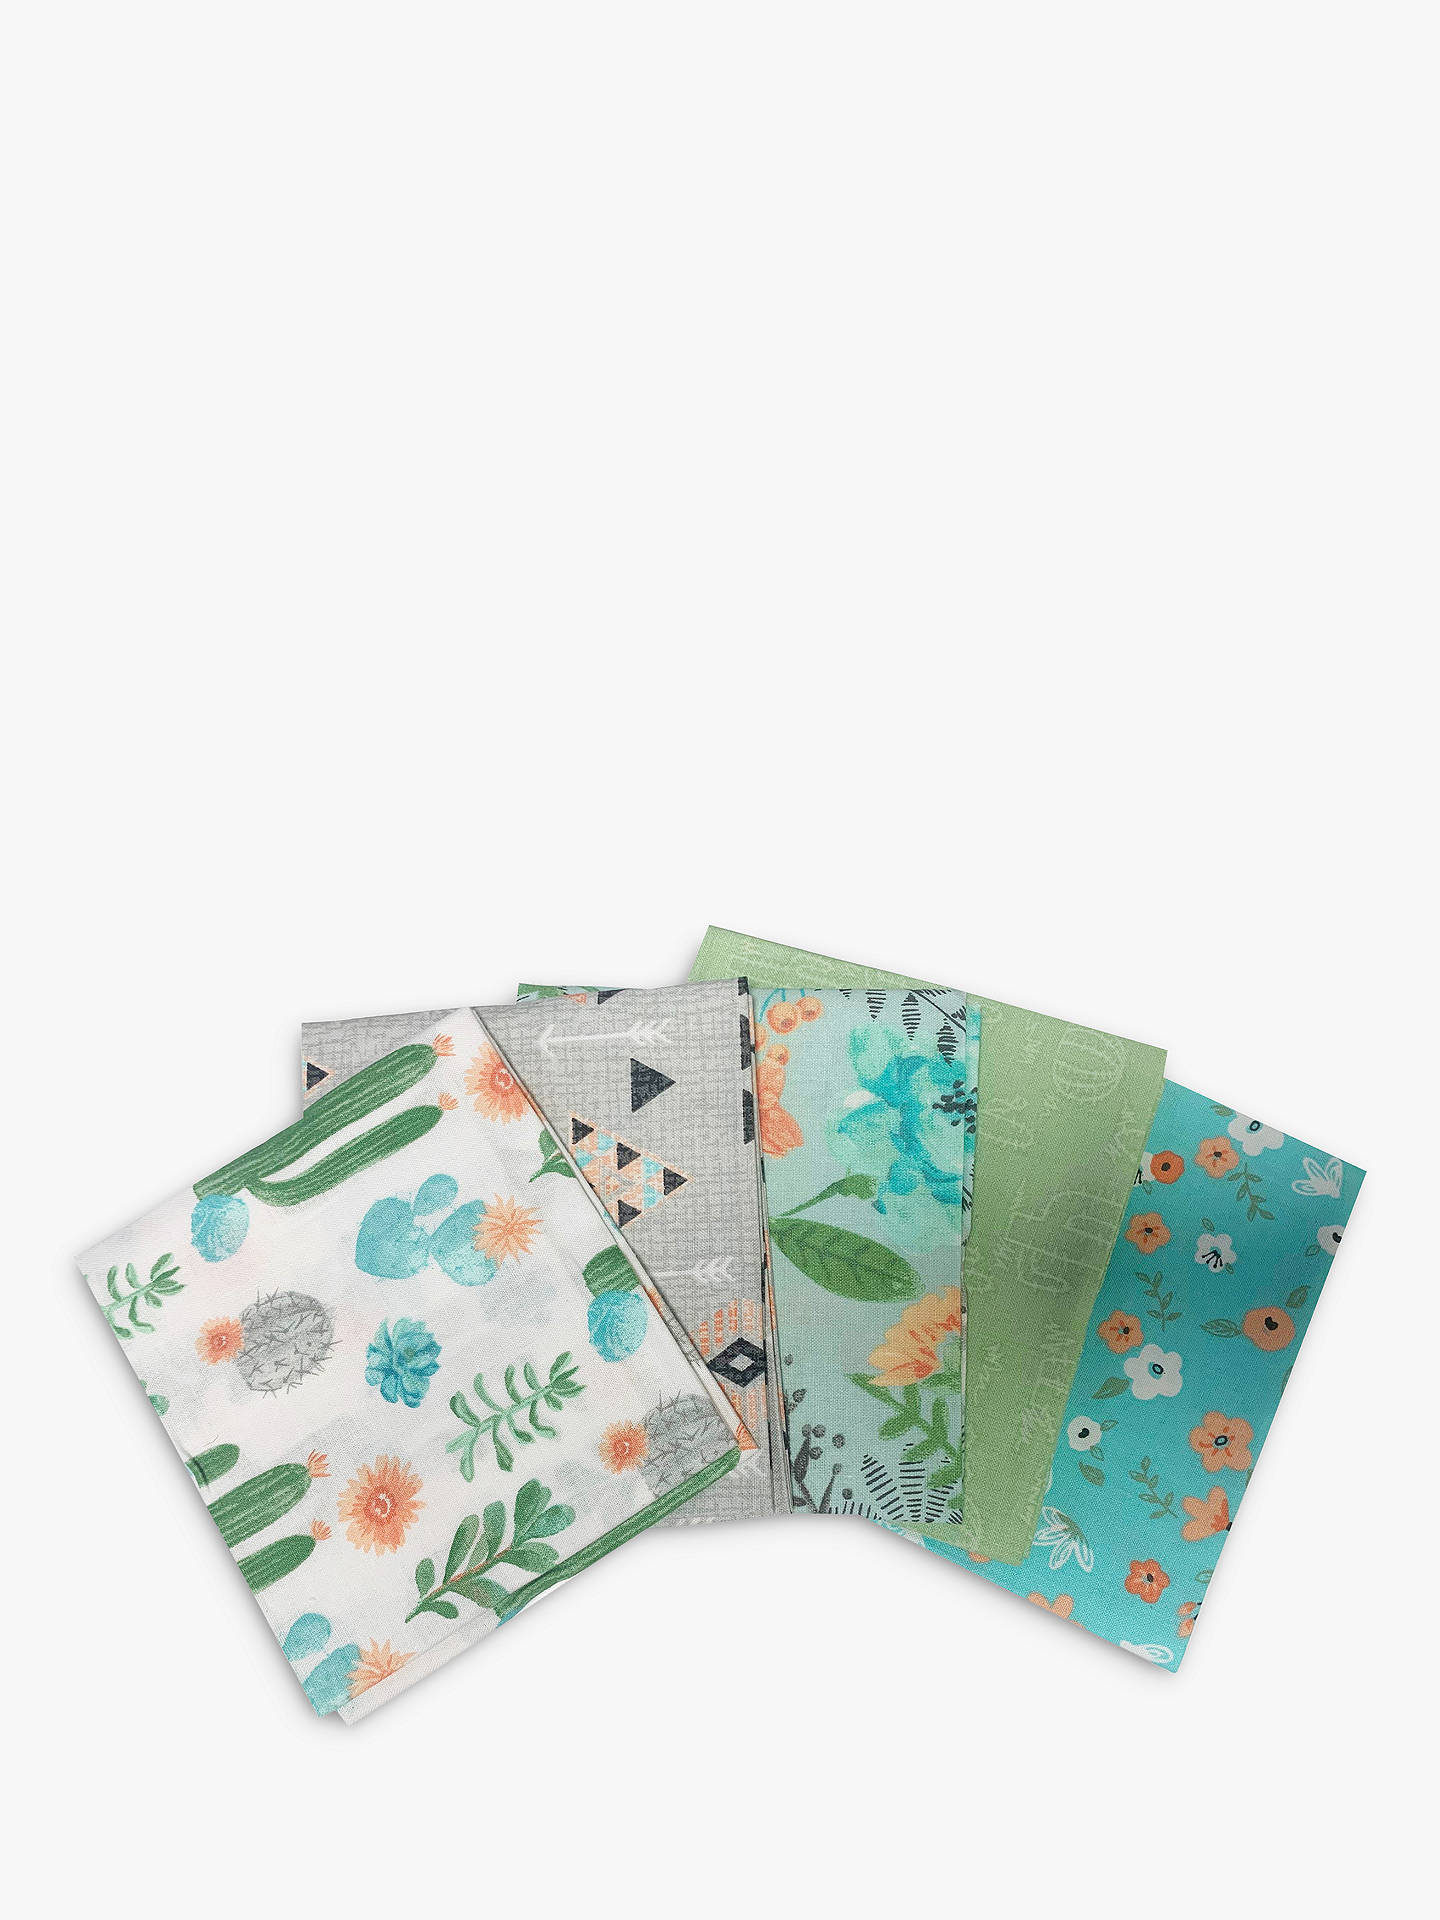 Buy Visage Textiles Aiyanna Print Fat Quarter Fabrics, Pack of 5, Multi Online at johnlewis.com